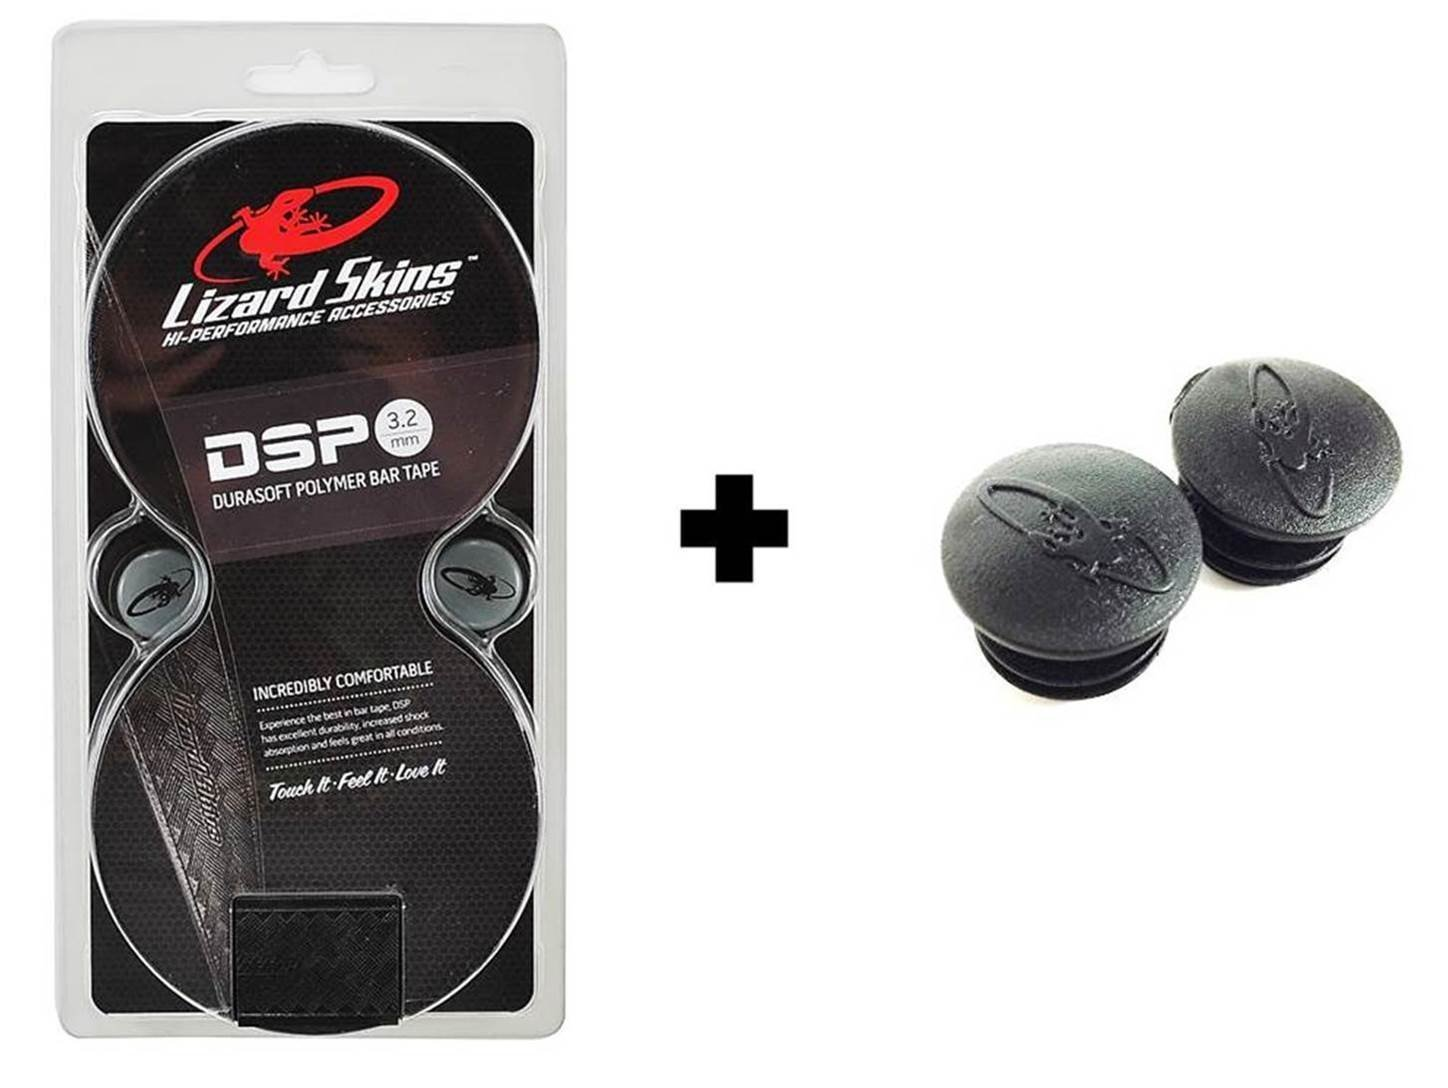 Lizard Skins Road DSP 3.2mm BLACK Bar Tape Bundle | 2 Rolls of Tape & 2 BONUS Bar Plugs [並行輸入品] B075K5ZM46